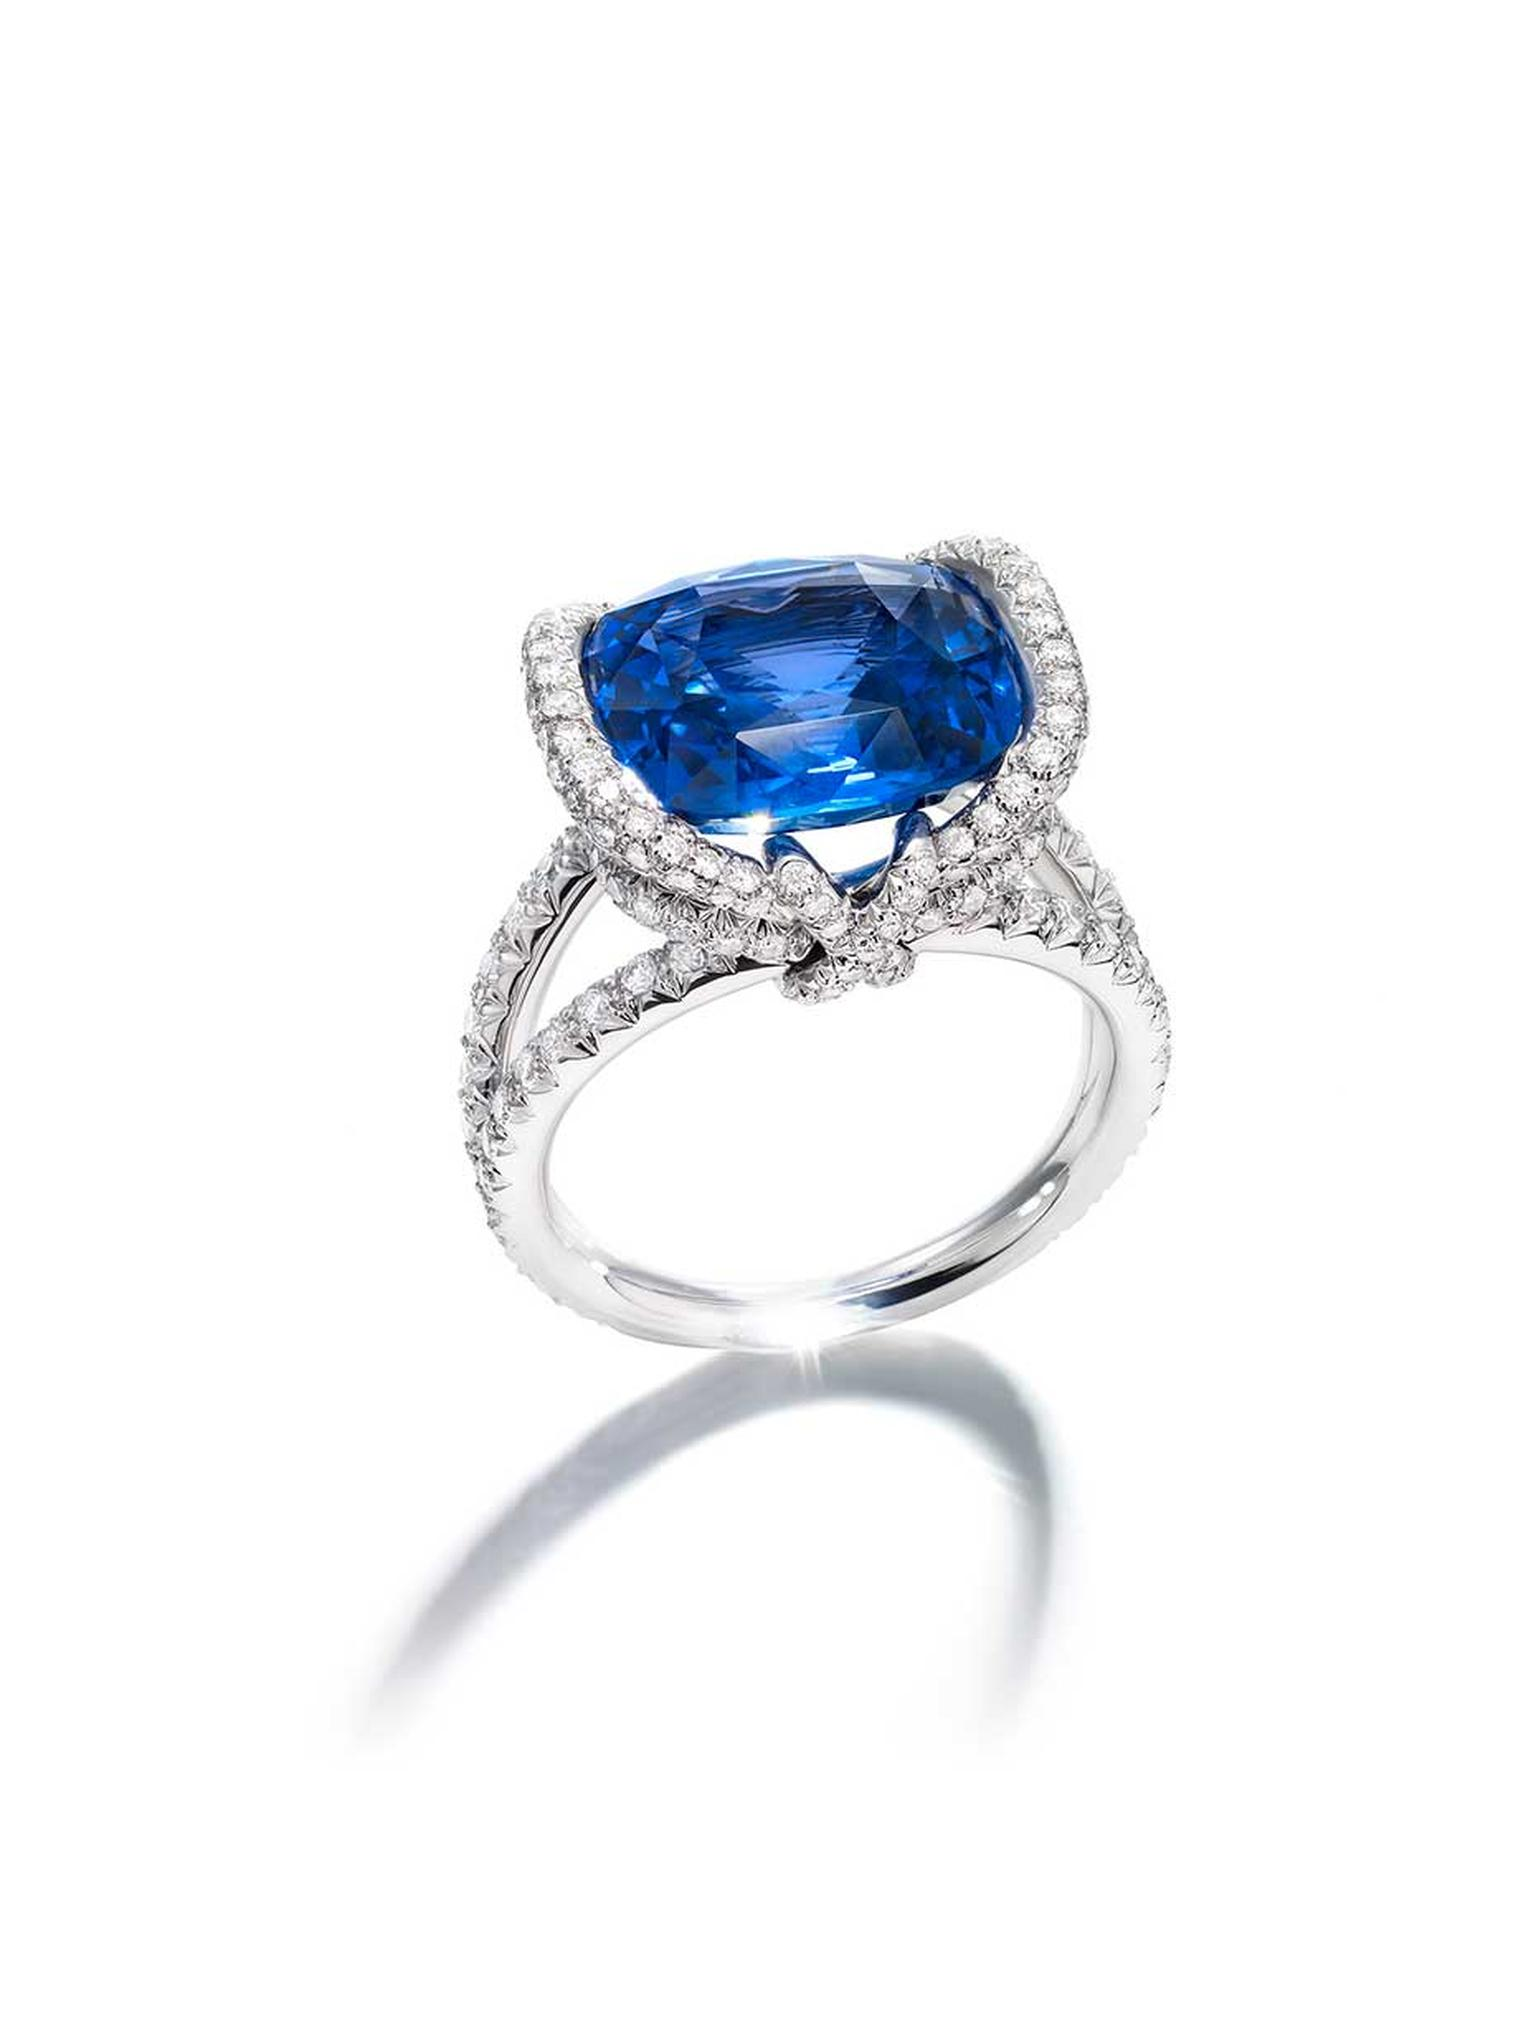 Chaumet white gold Liens ring with 158 brilliant-cut diamonds and a 7.23ct cushion-cut sapphire